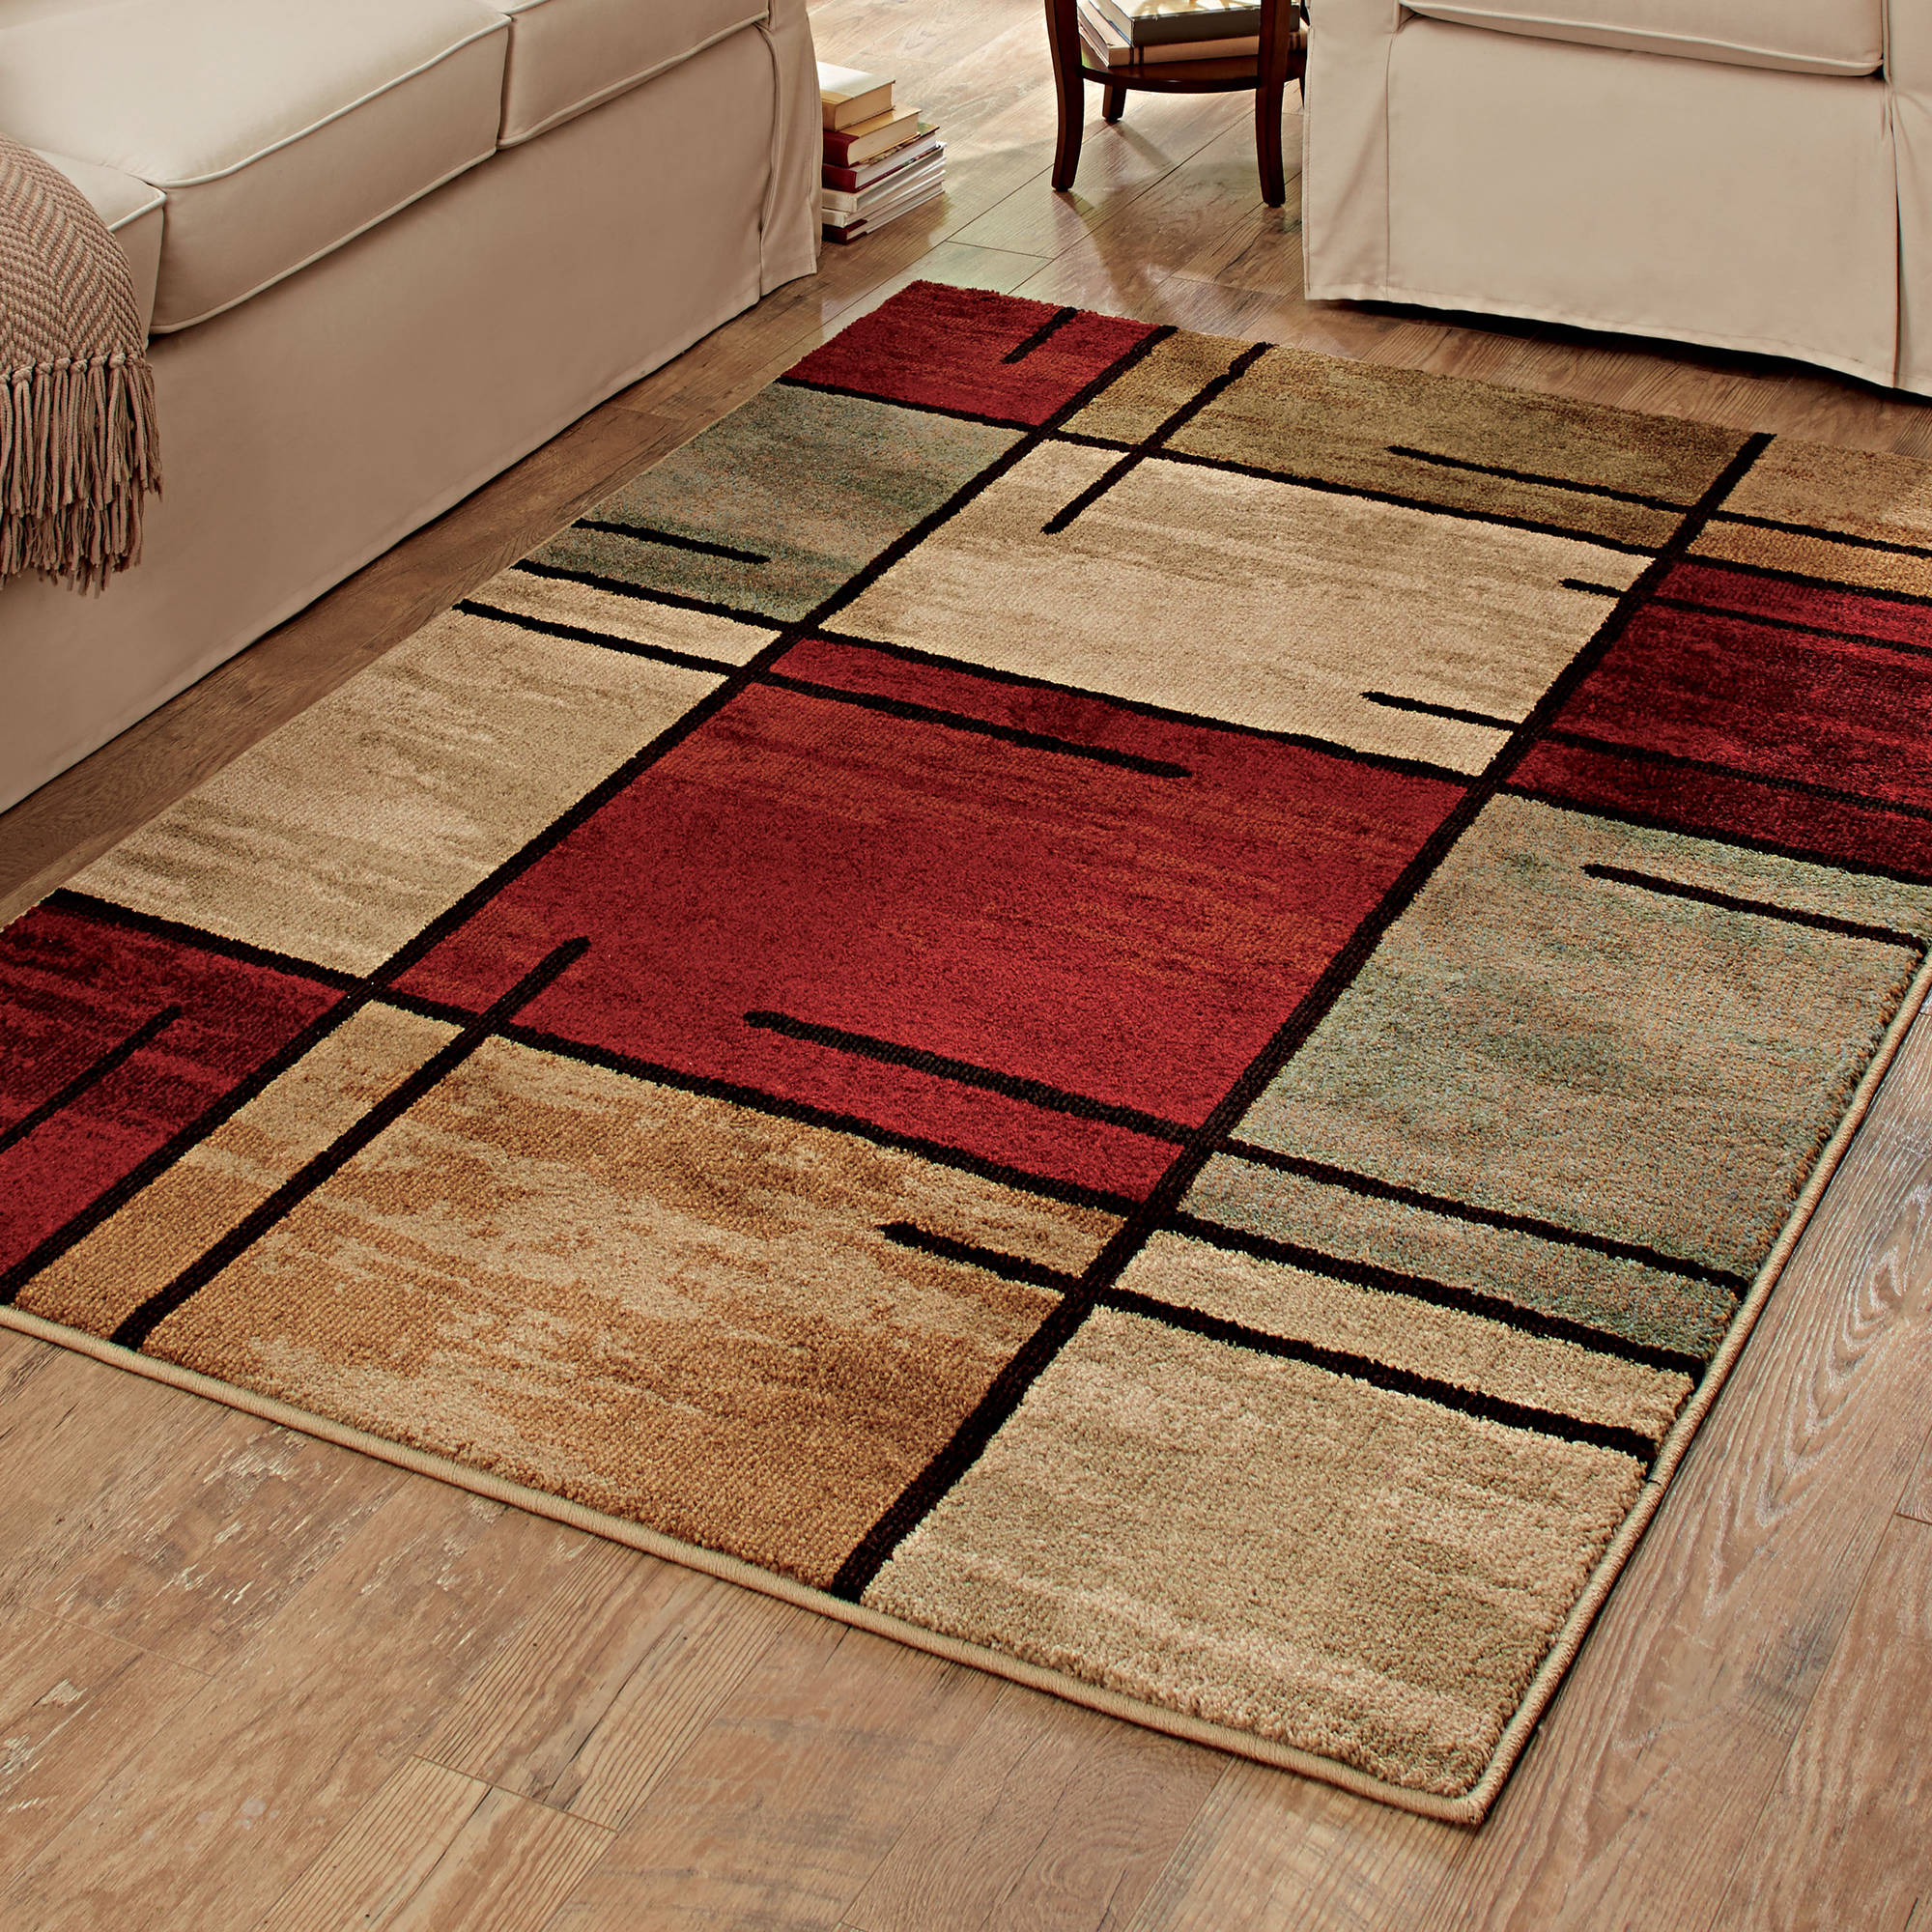 better homes and gardens spice grid area rug UDZJBRC